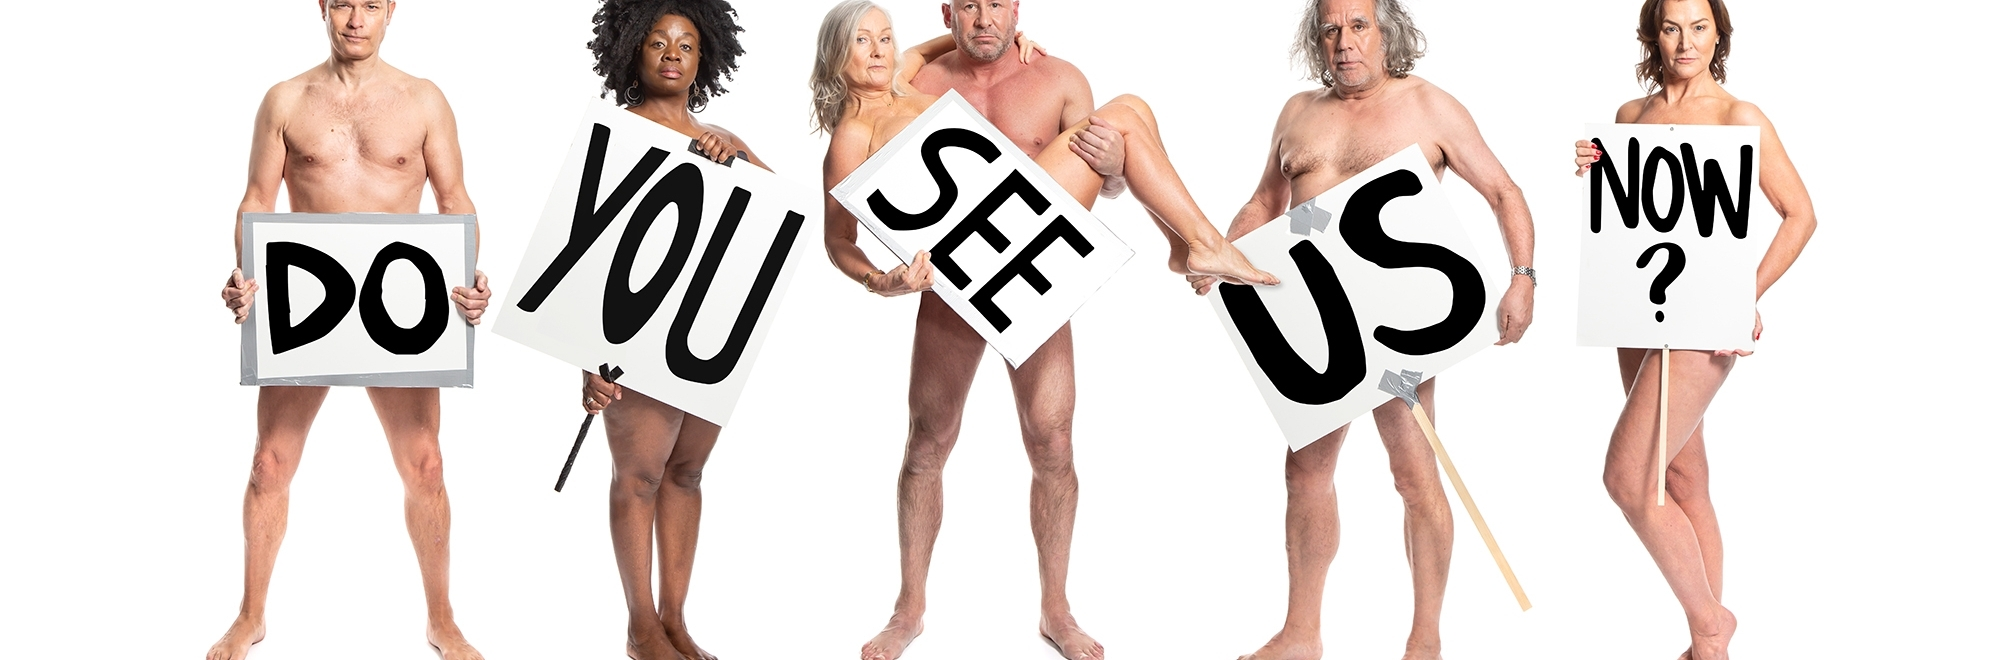 Stripped-down ads: Naked over-50s demonstrate against ageism for dating app Lumen